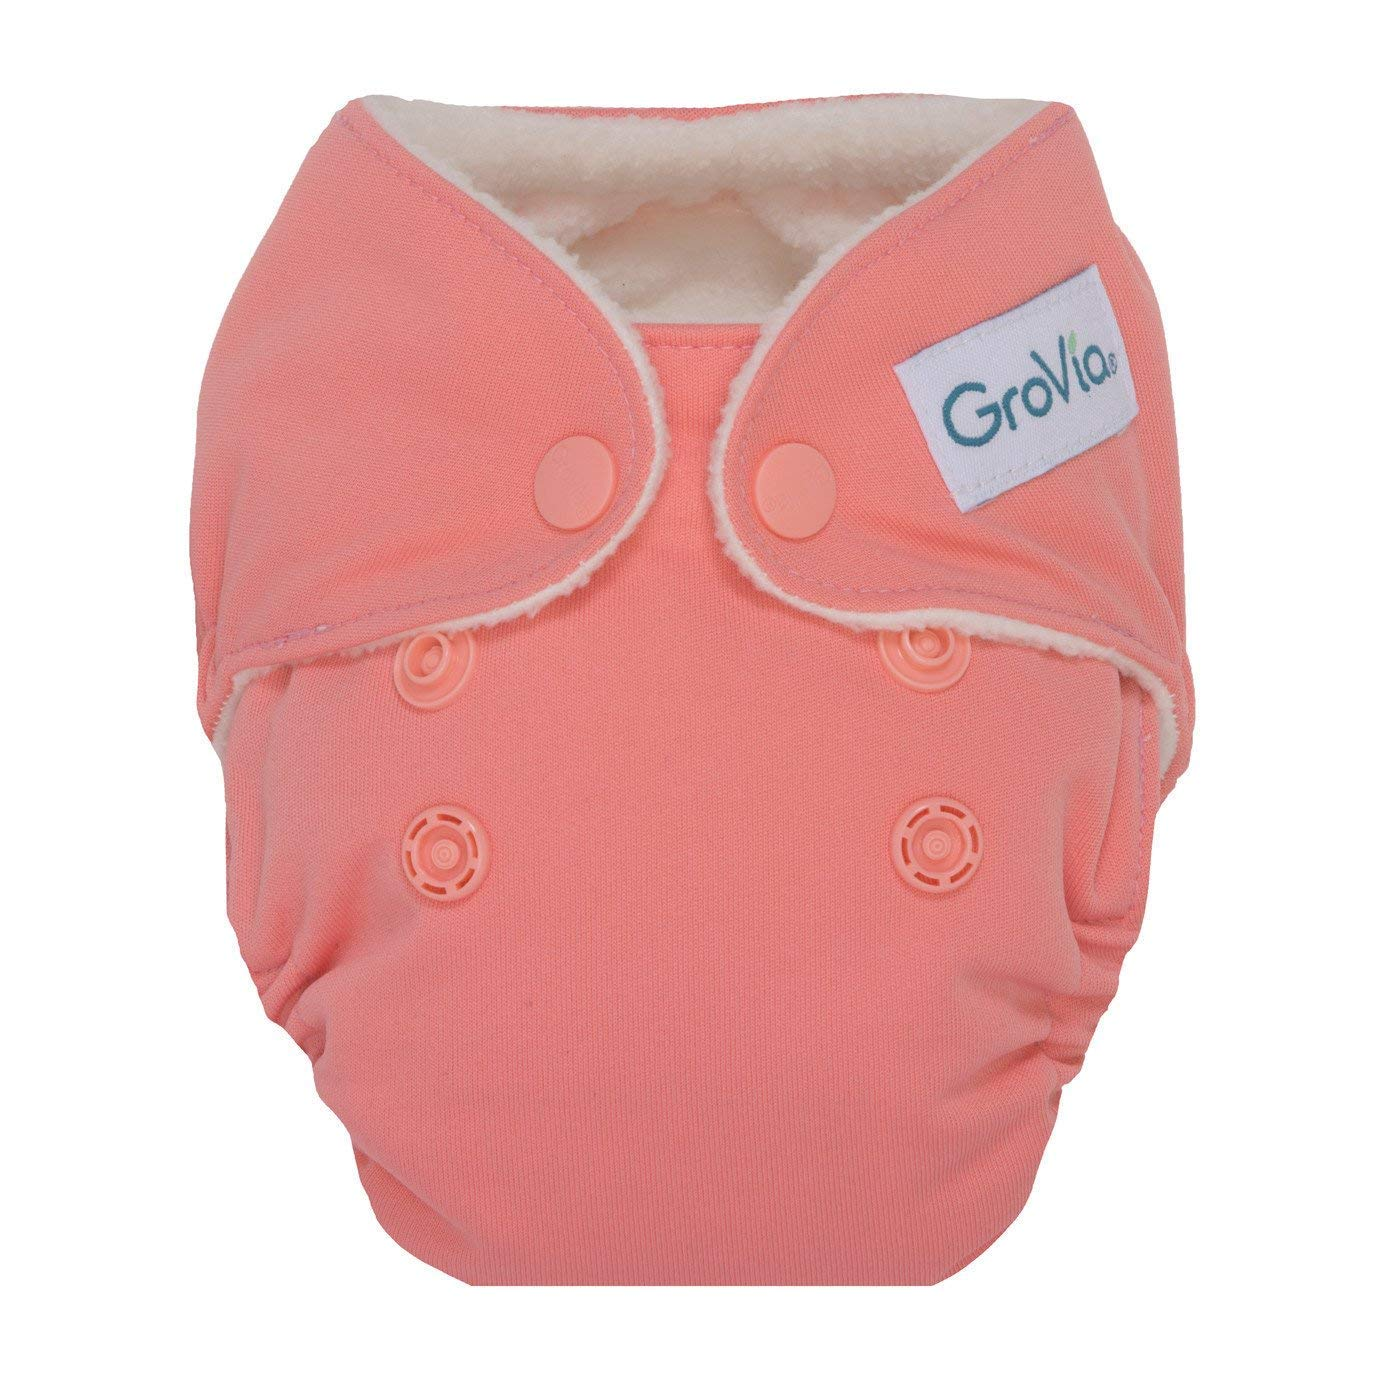 GroVia Newborn All in One Snap Reusable Cloth Diaper (AIO) (Rose)